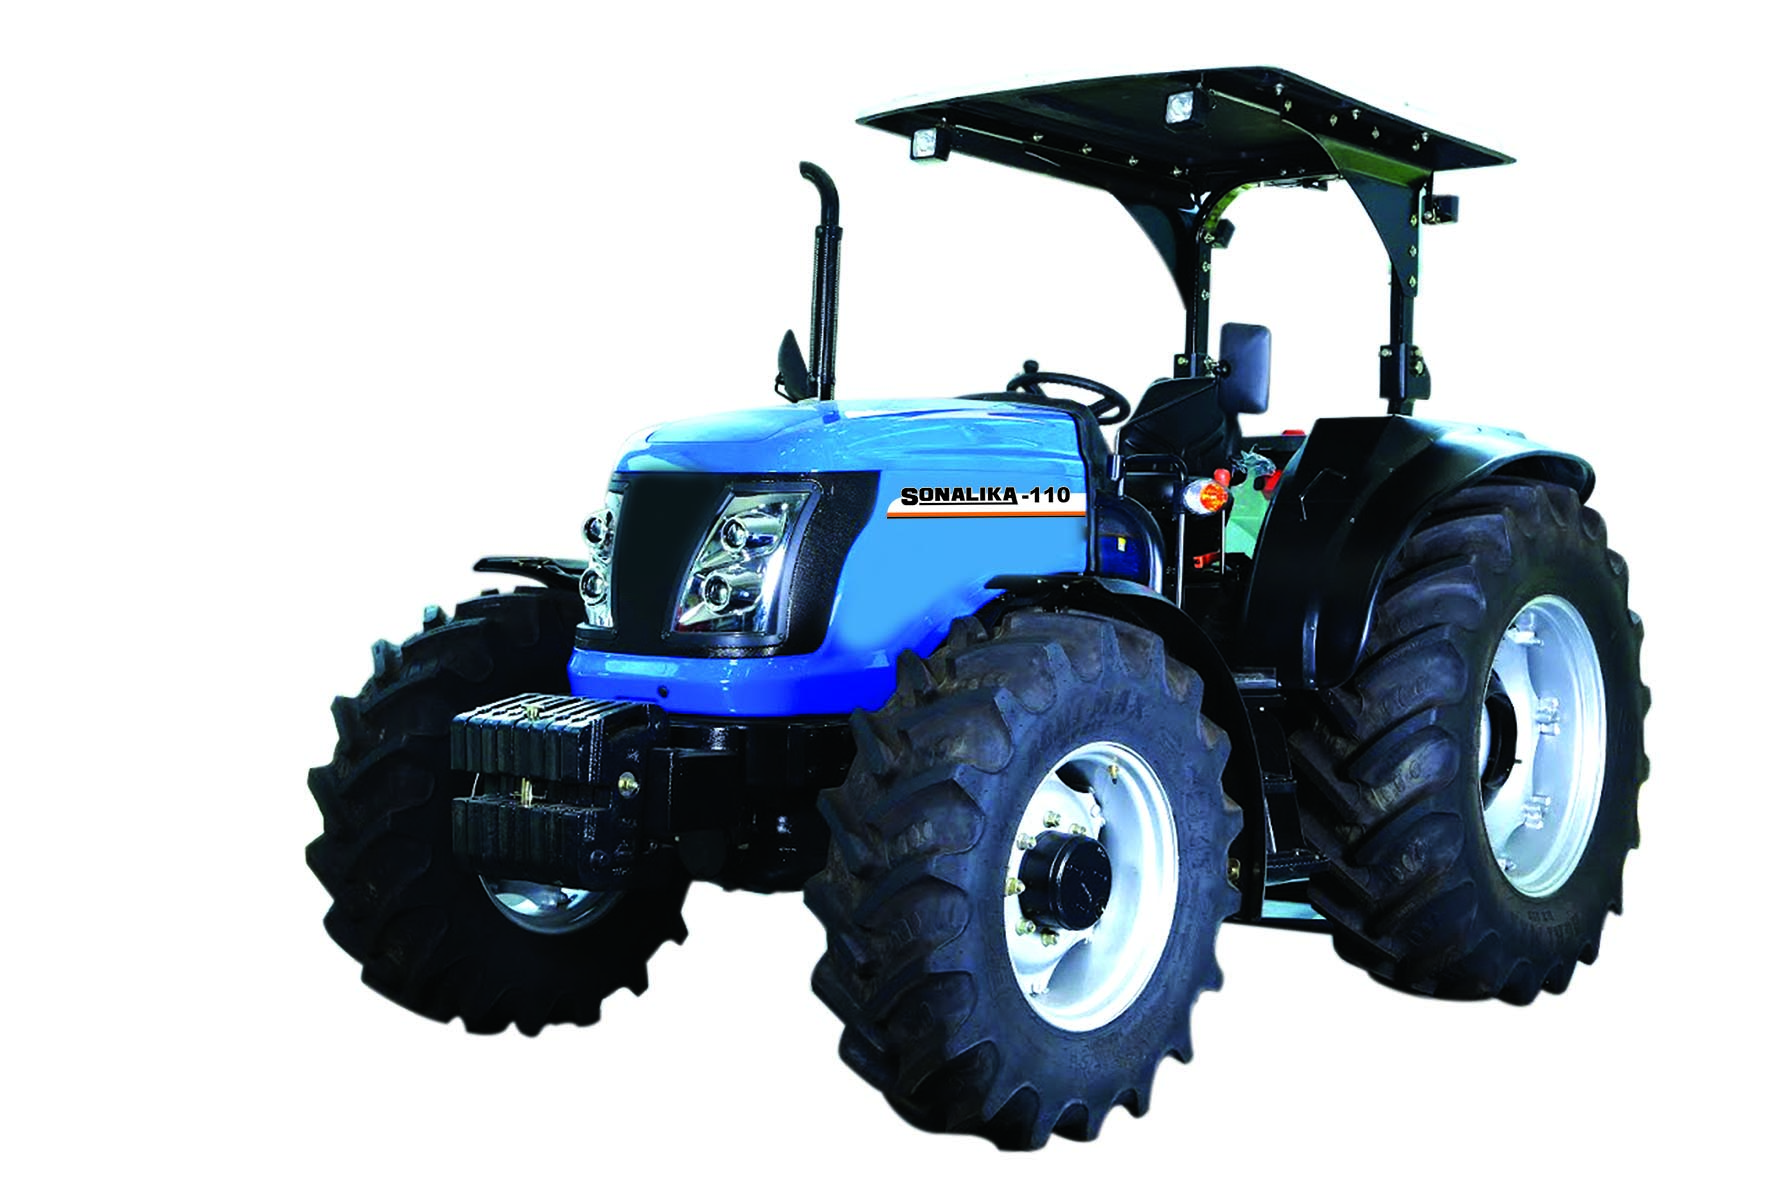 Sonalika 110 HP Tractor Price in India Specification